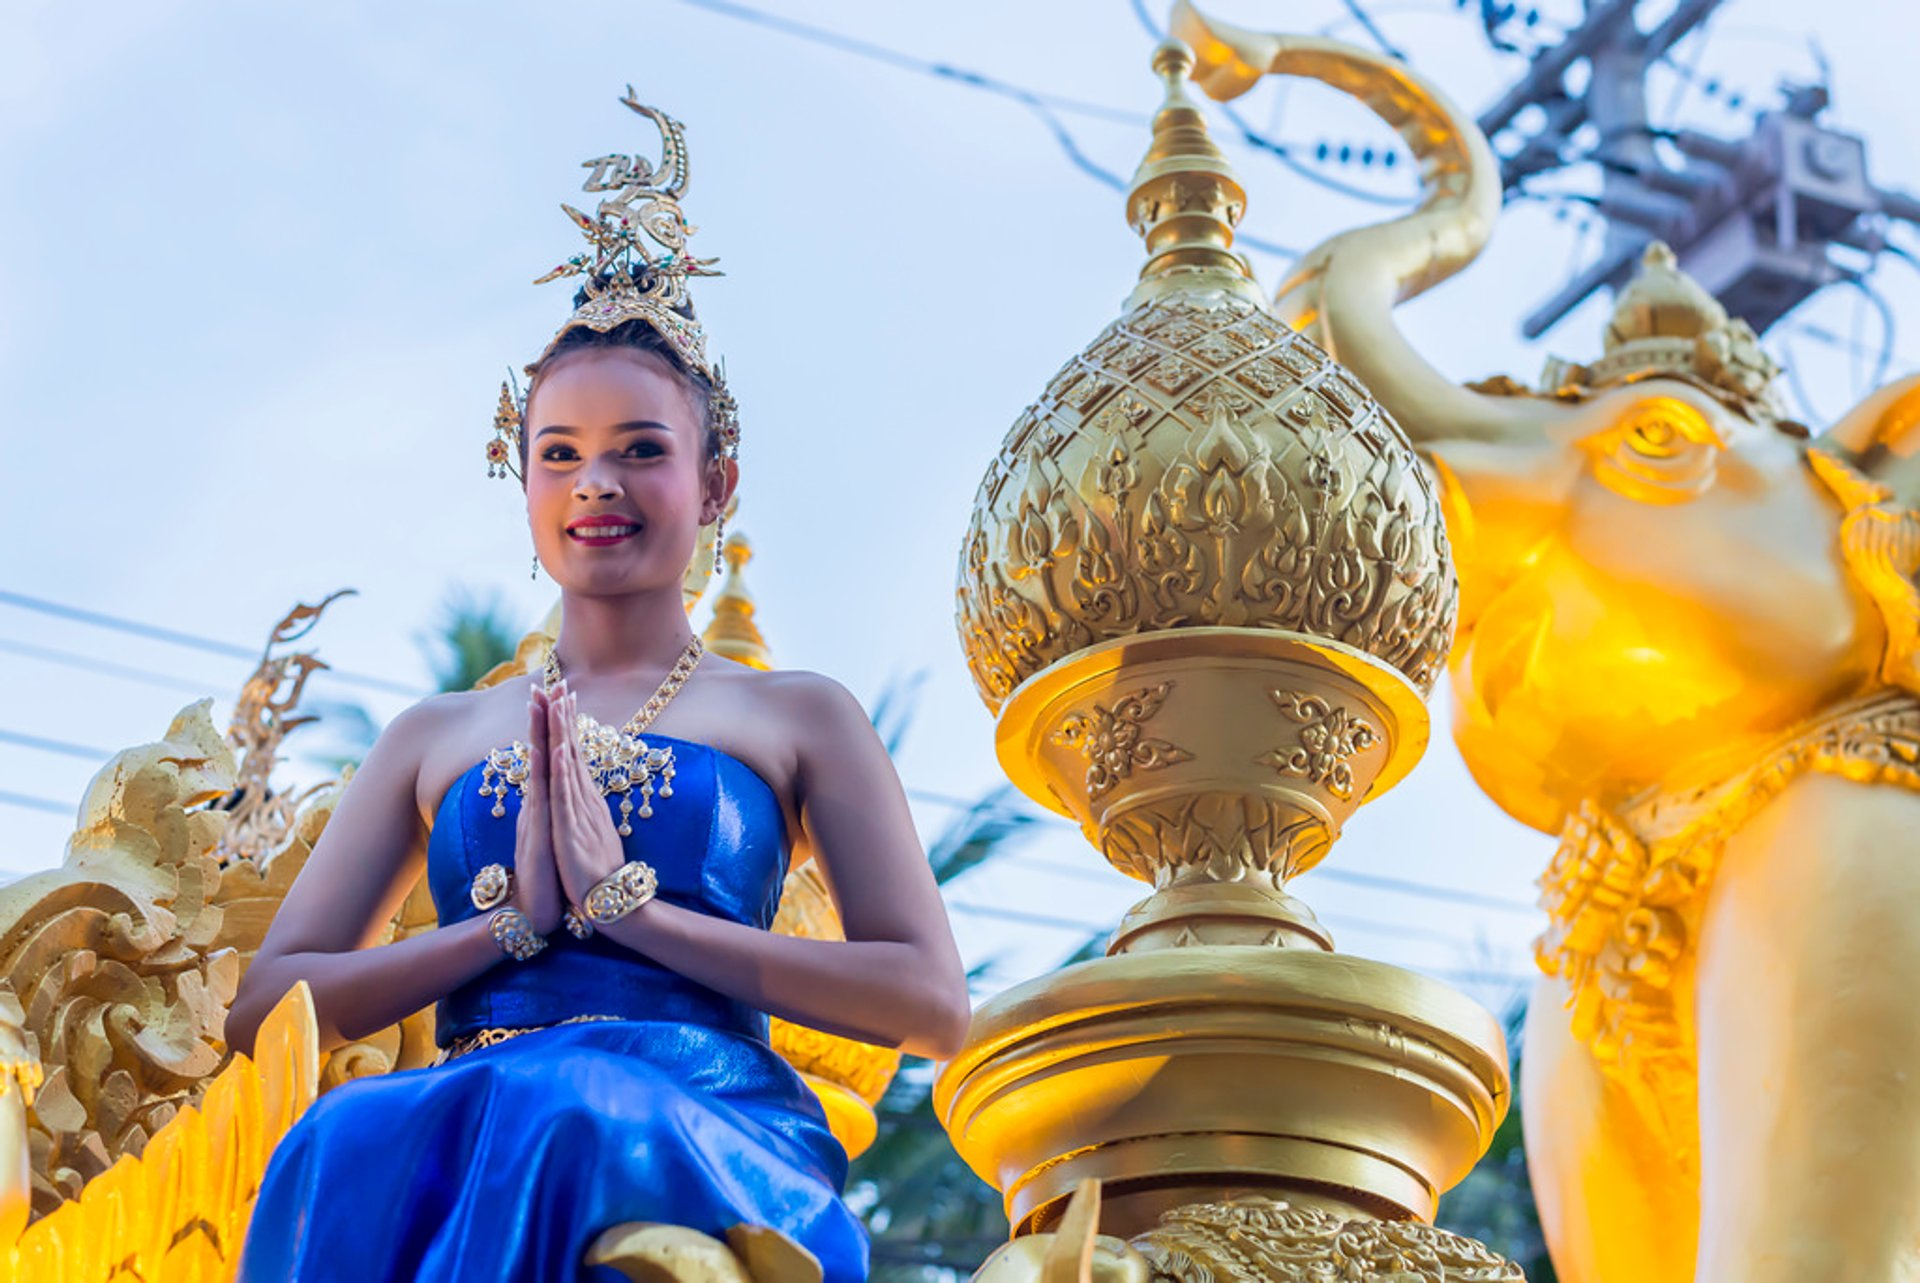 Best time to see Patong Carnival in Phuket 2020